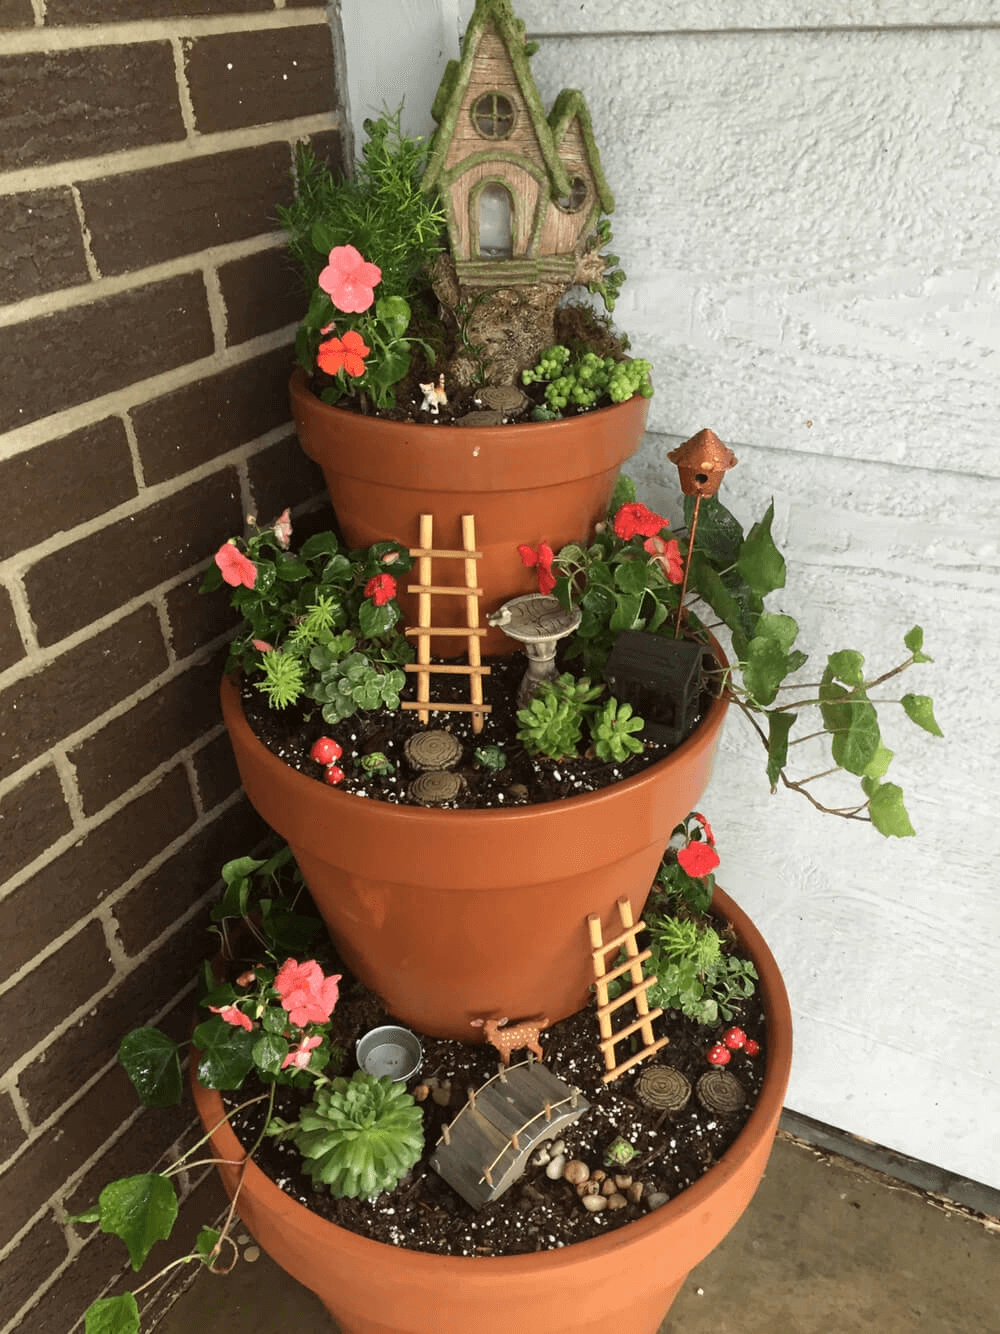 SIMPLE TIPS TO DECORATE PORCH WITH DIY FAIRY GARDEN FLOWER POTS